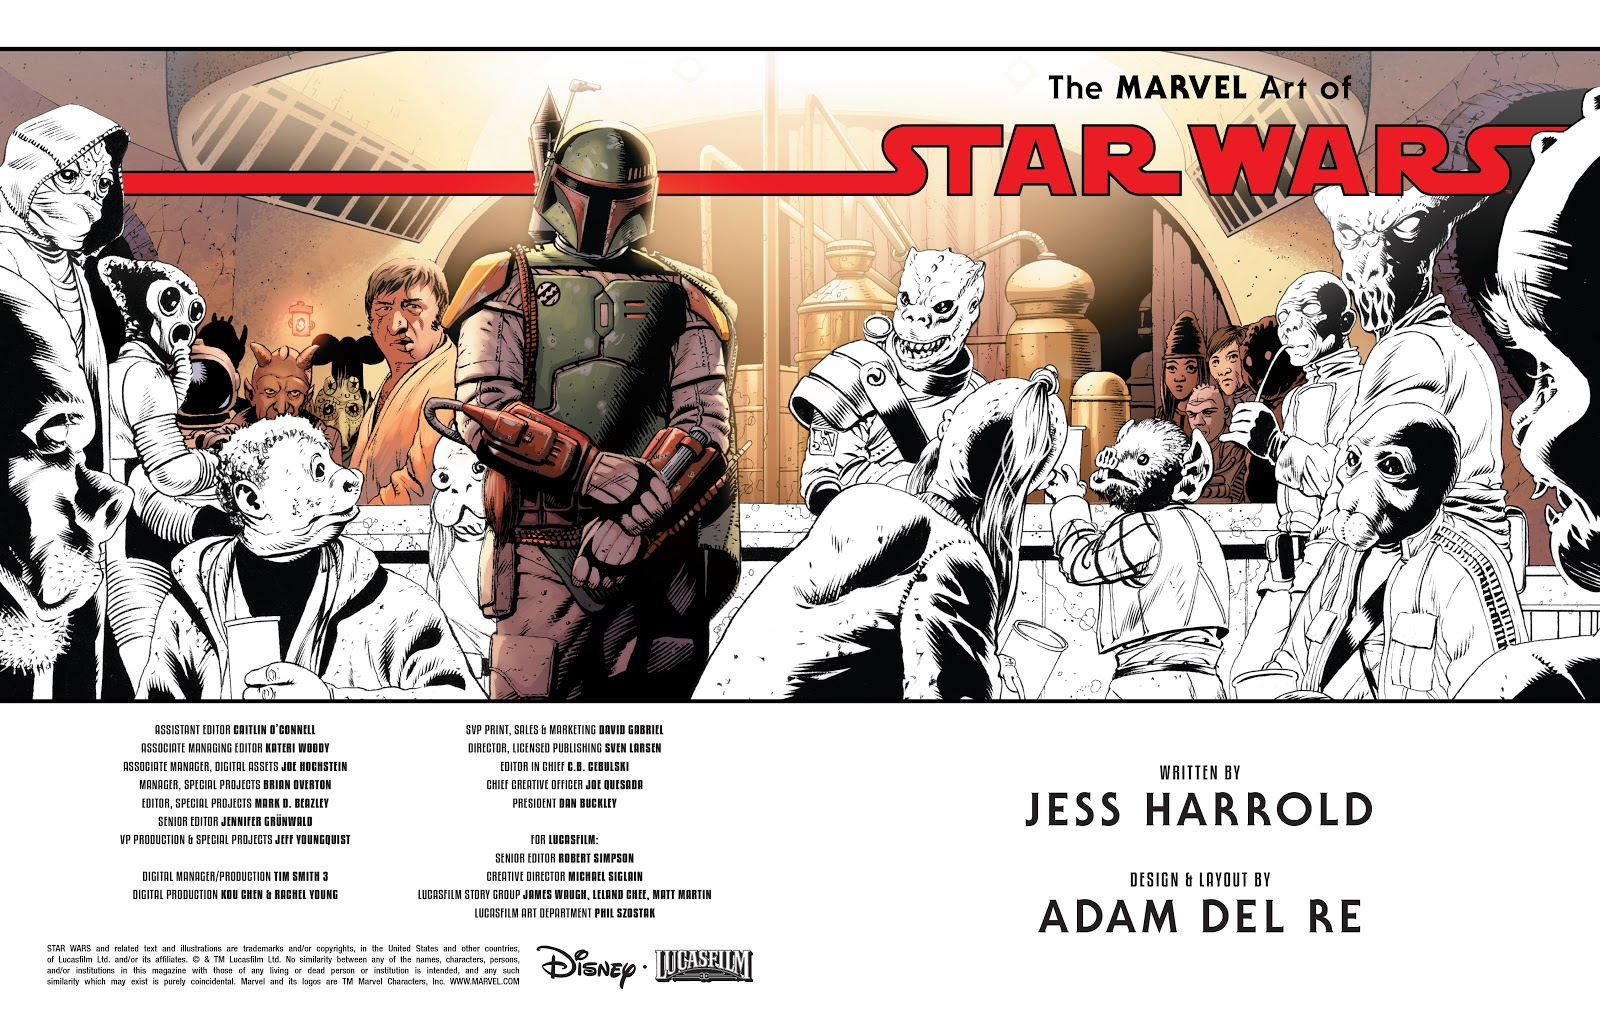 Read online The Marvel Art of Star Wars comic -  Issue # TPB (Part 1) - 3